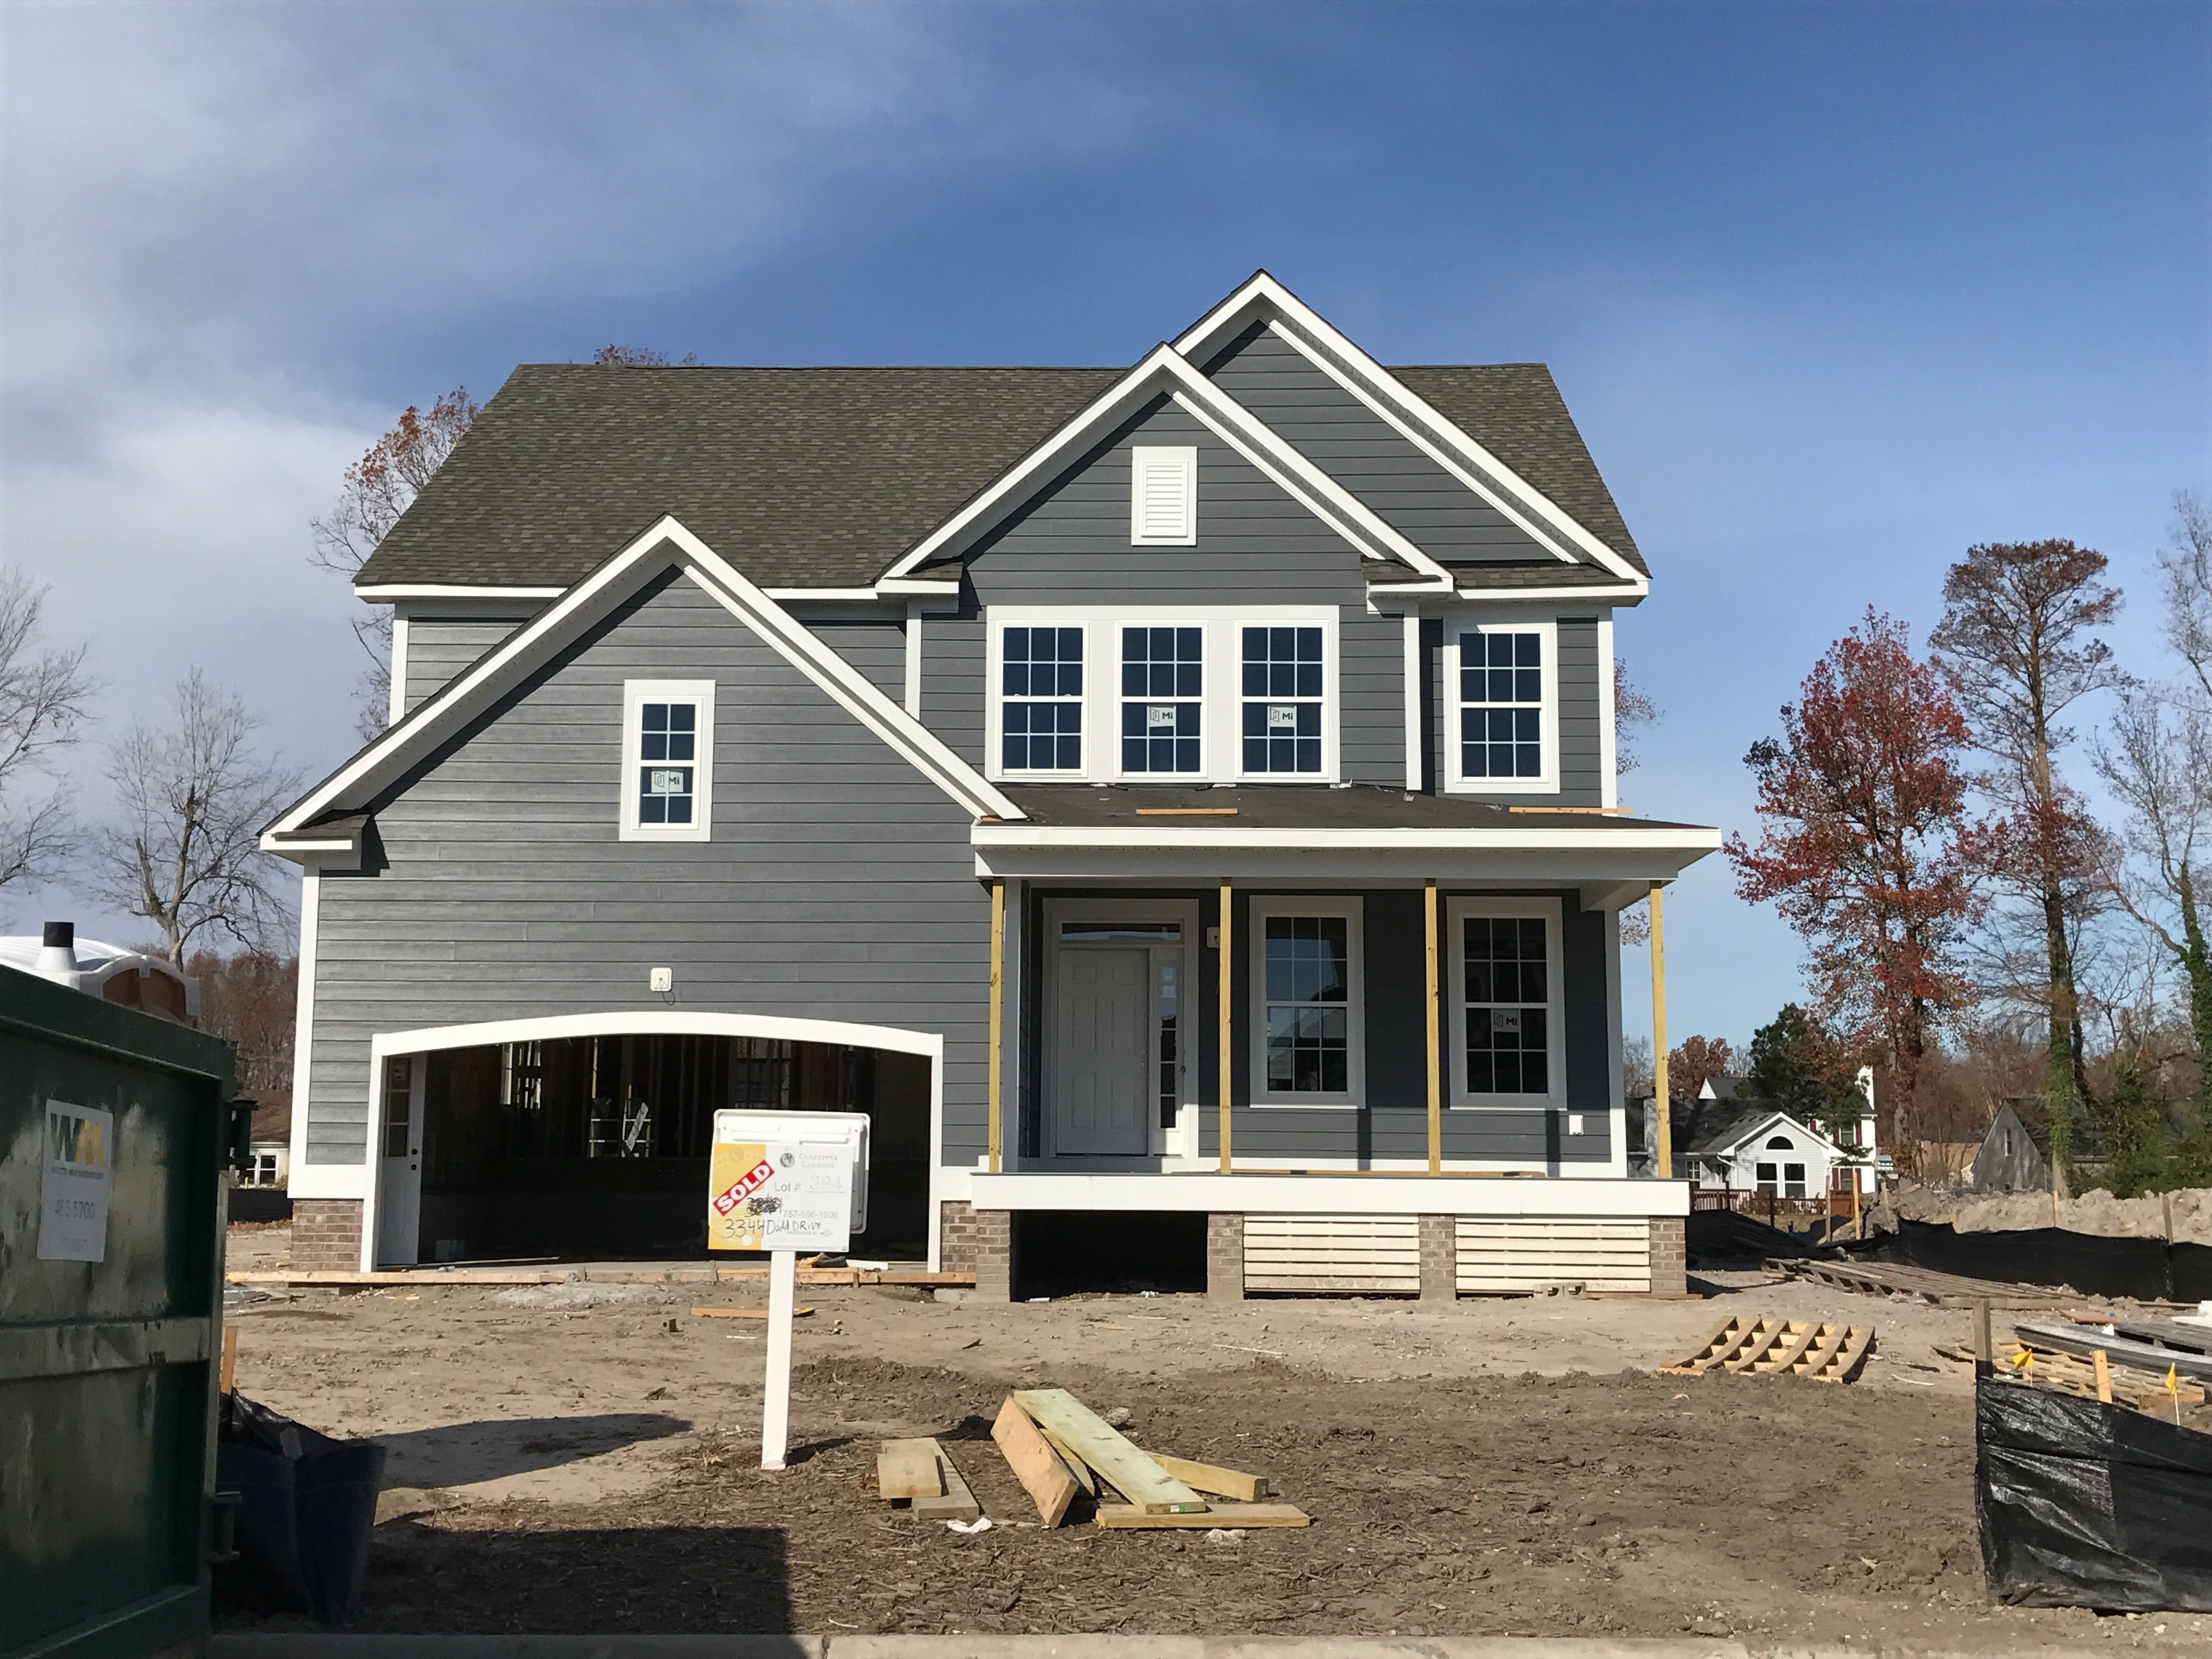 James Hardie Night Gray Siding Home Exterior In 2019